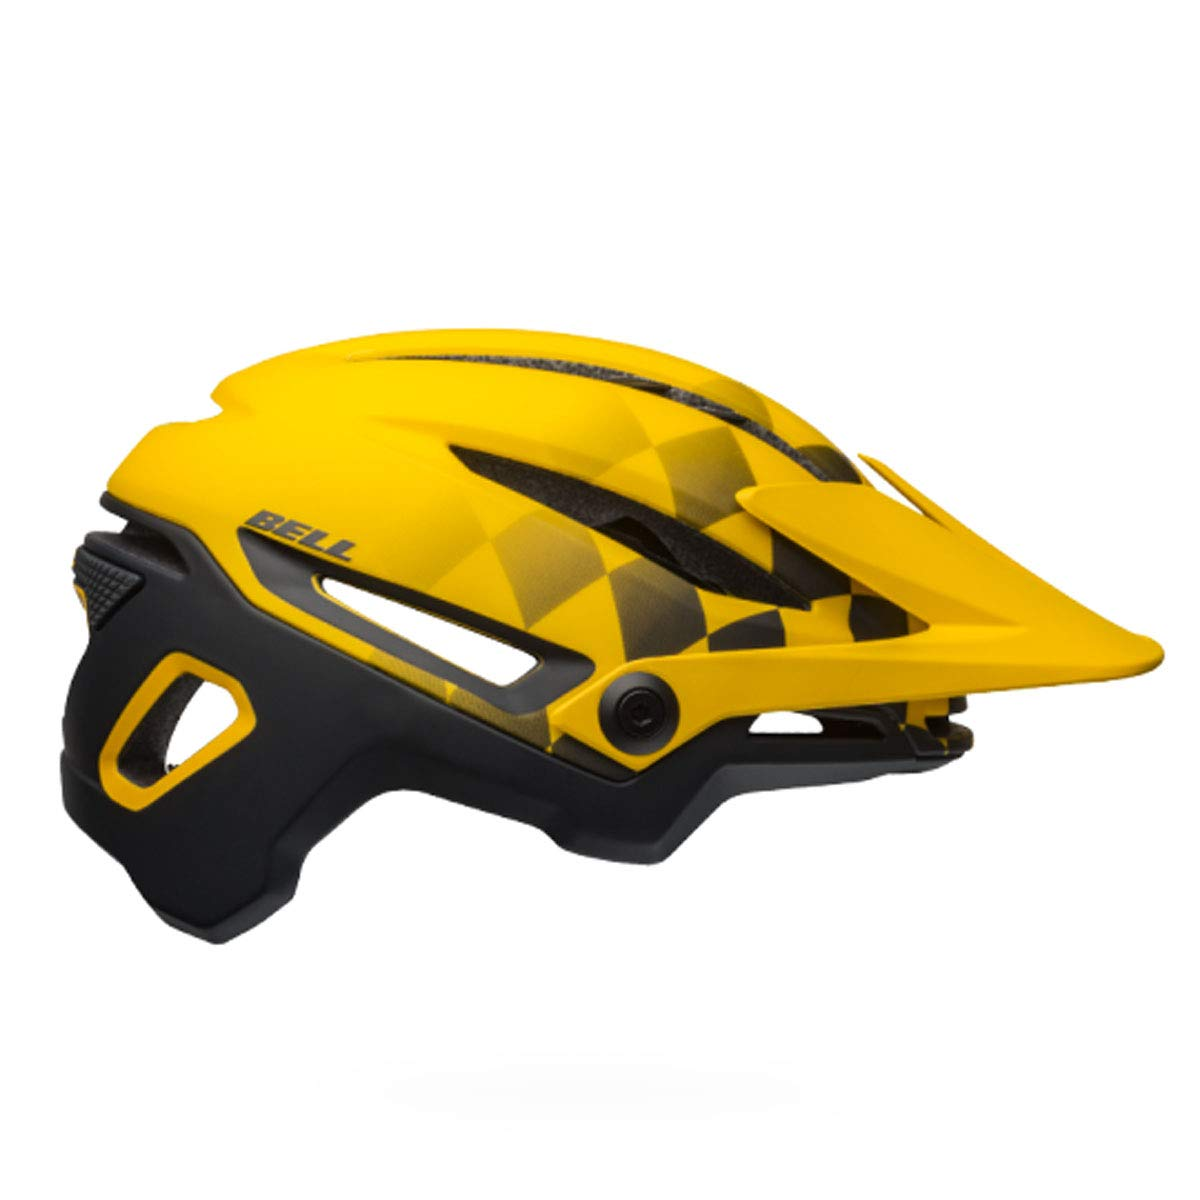 Bell Sixer MIPS Bike Helmet - Finish Line Matte Yellow/Black Small